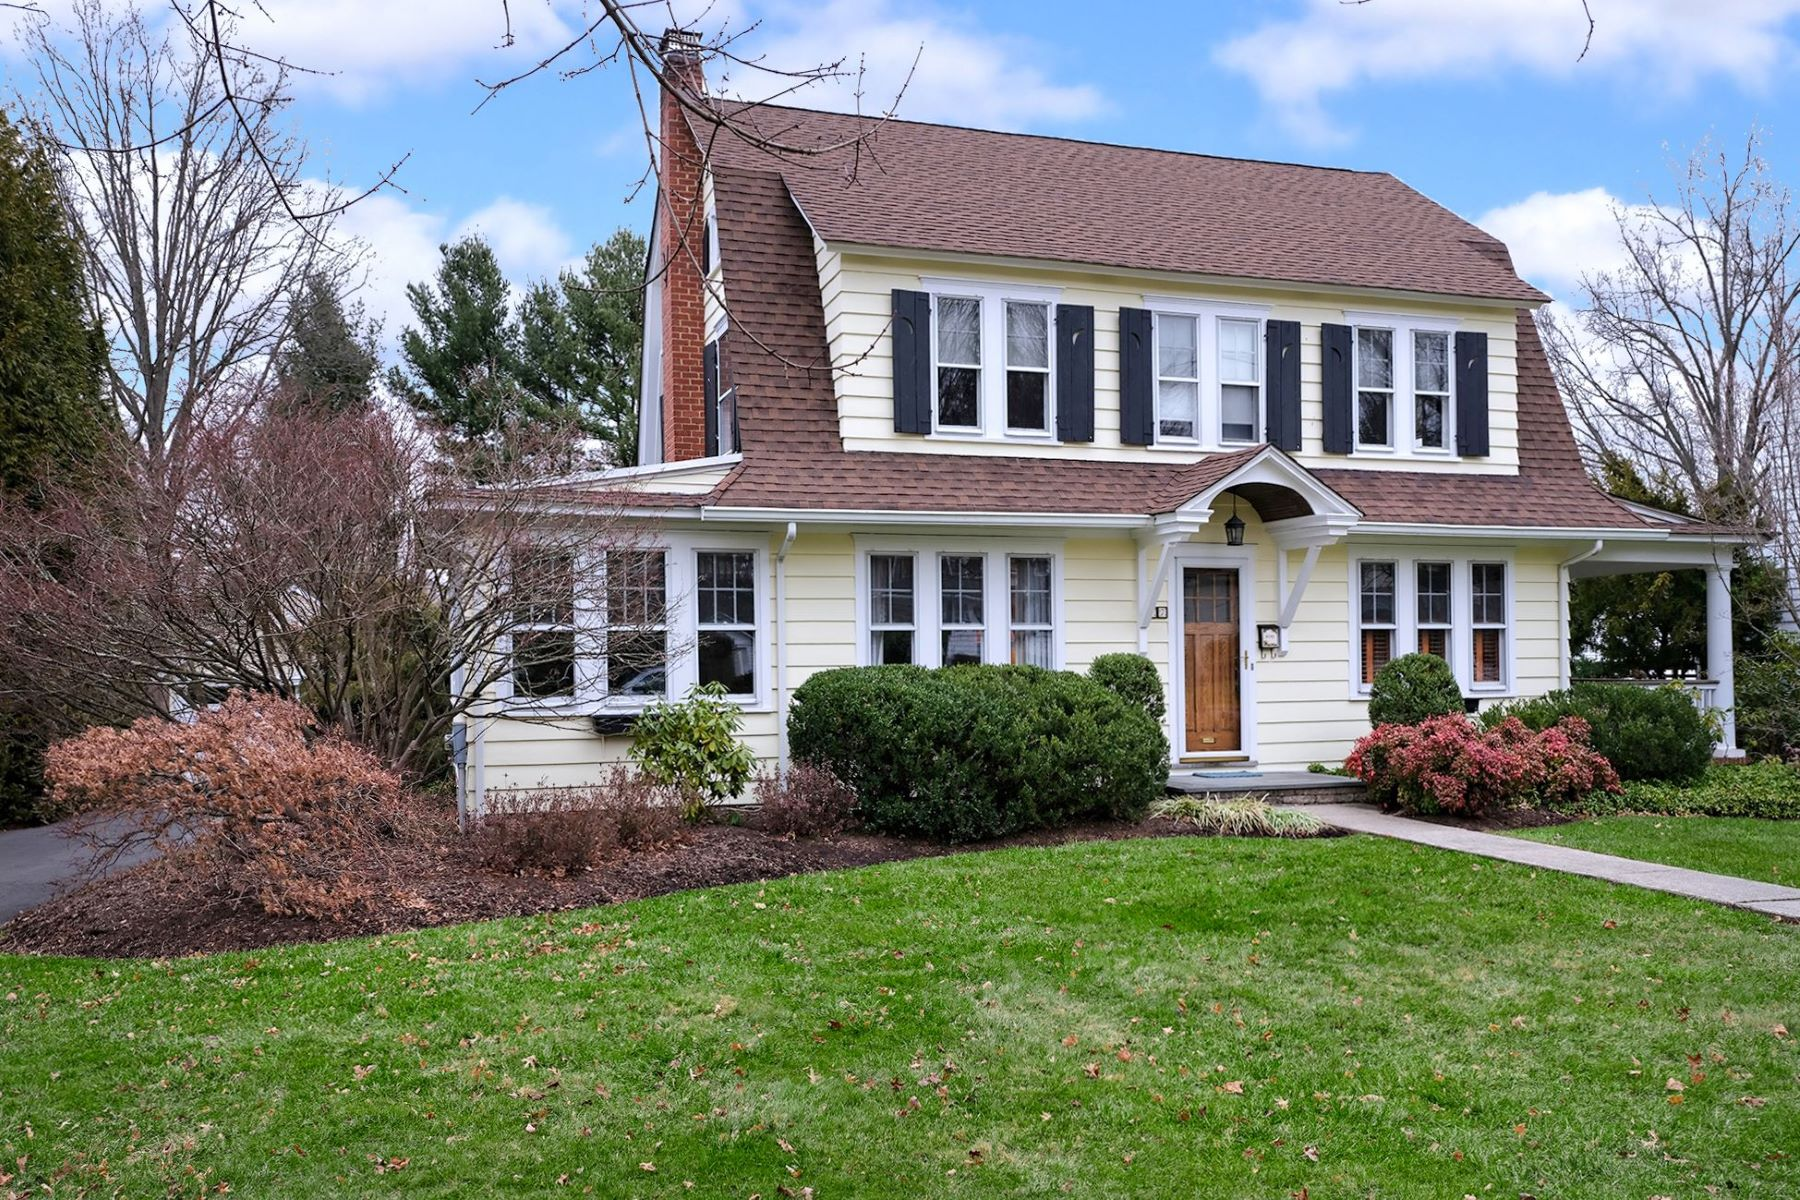 Single Family Homes for Sale at Charming Dutch Colonial On A Premier Tree-lined Street 17 East Welling Avenue, Pennington, New Jersey 08534 United States